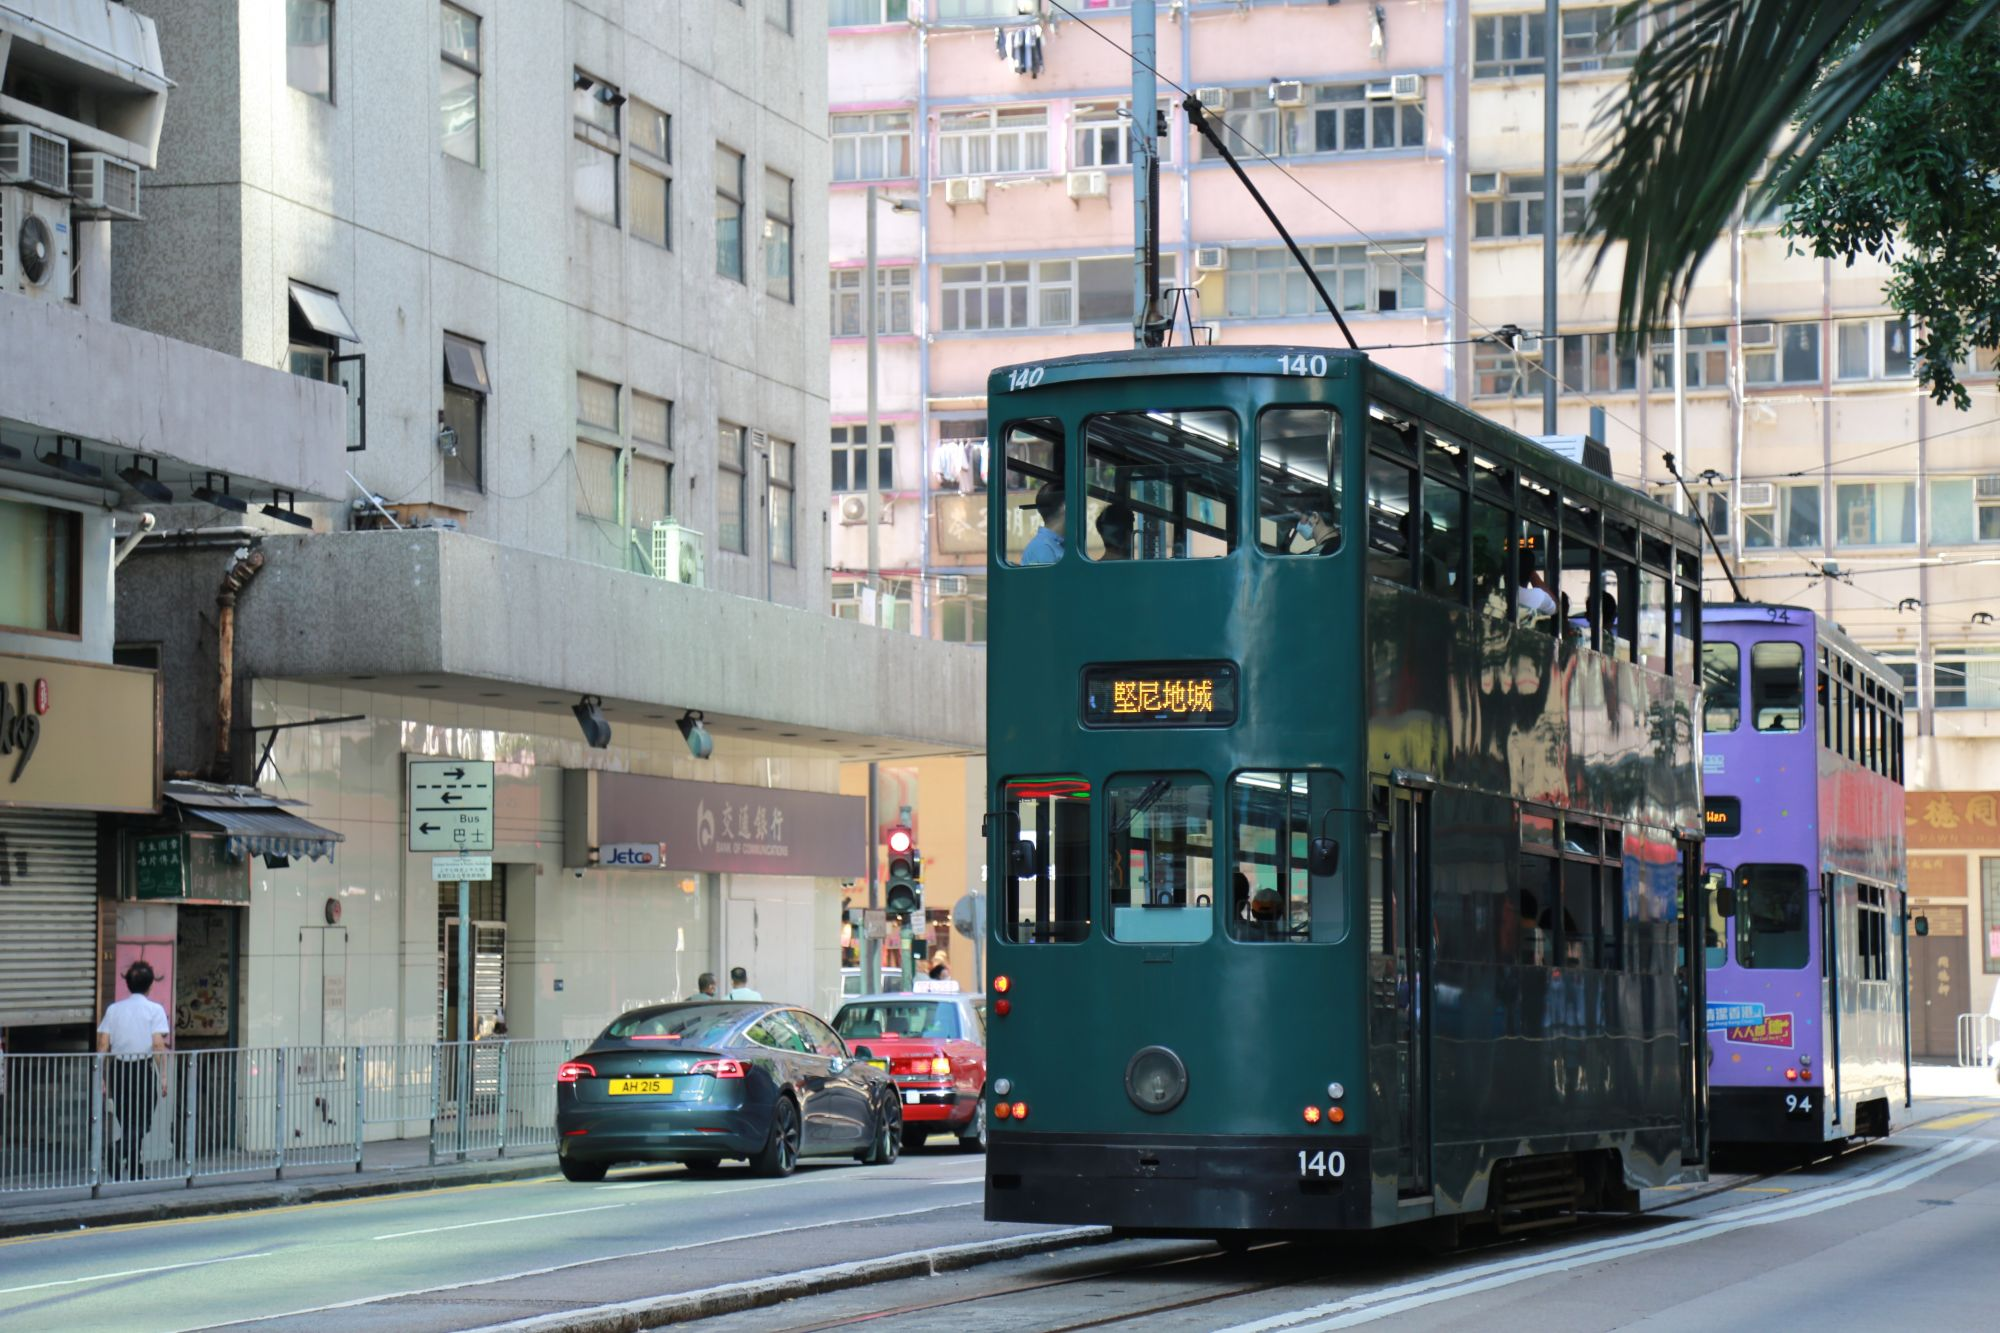 7 Unique Facts to Know About Hong Kong